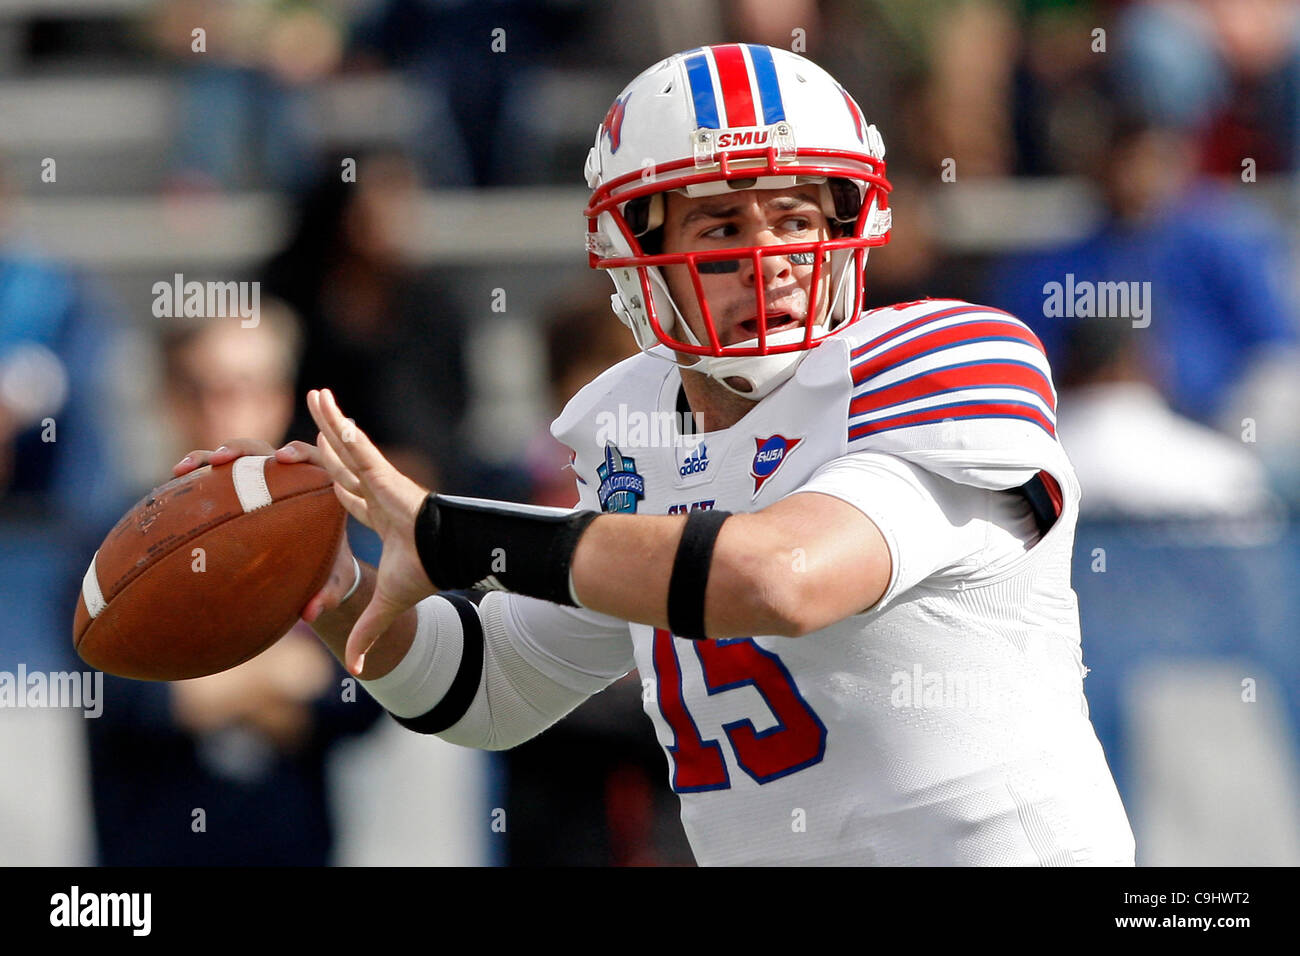 SMU QB Neal Burcham out for season with elbow injury - CBSSports.com